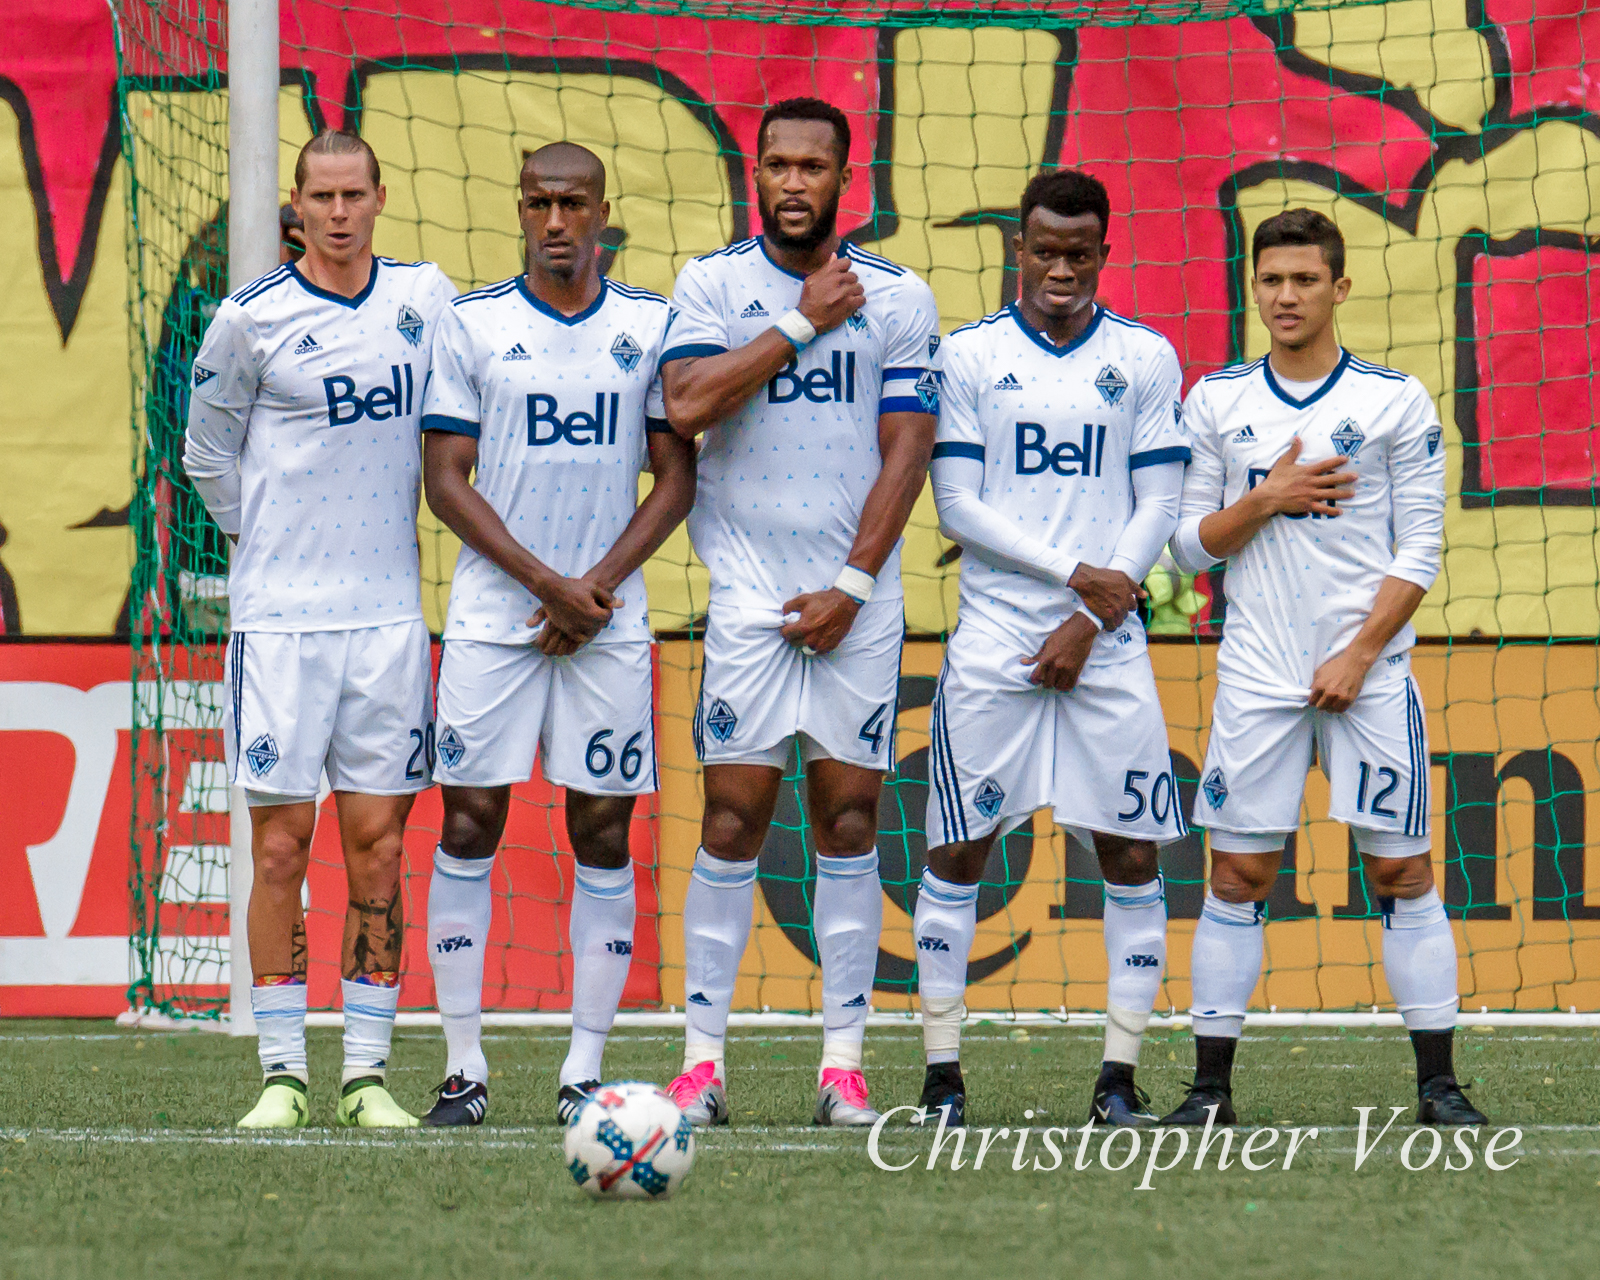 2017-10-22 Vancouver Whitecaps FC Wall.jpg